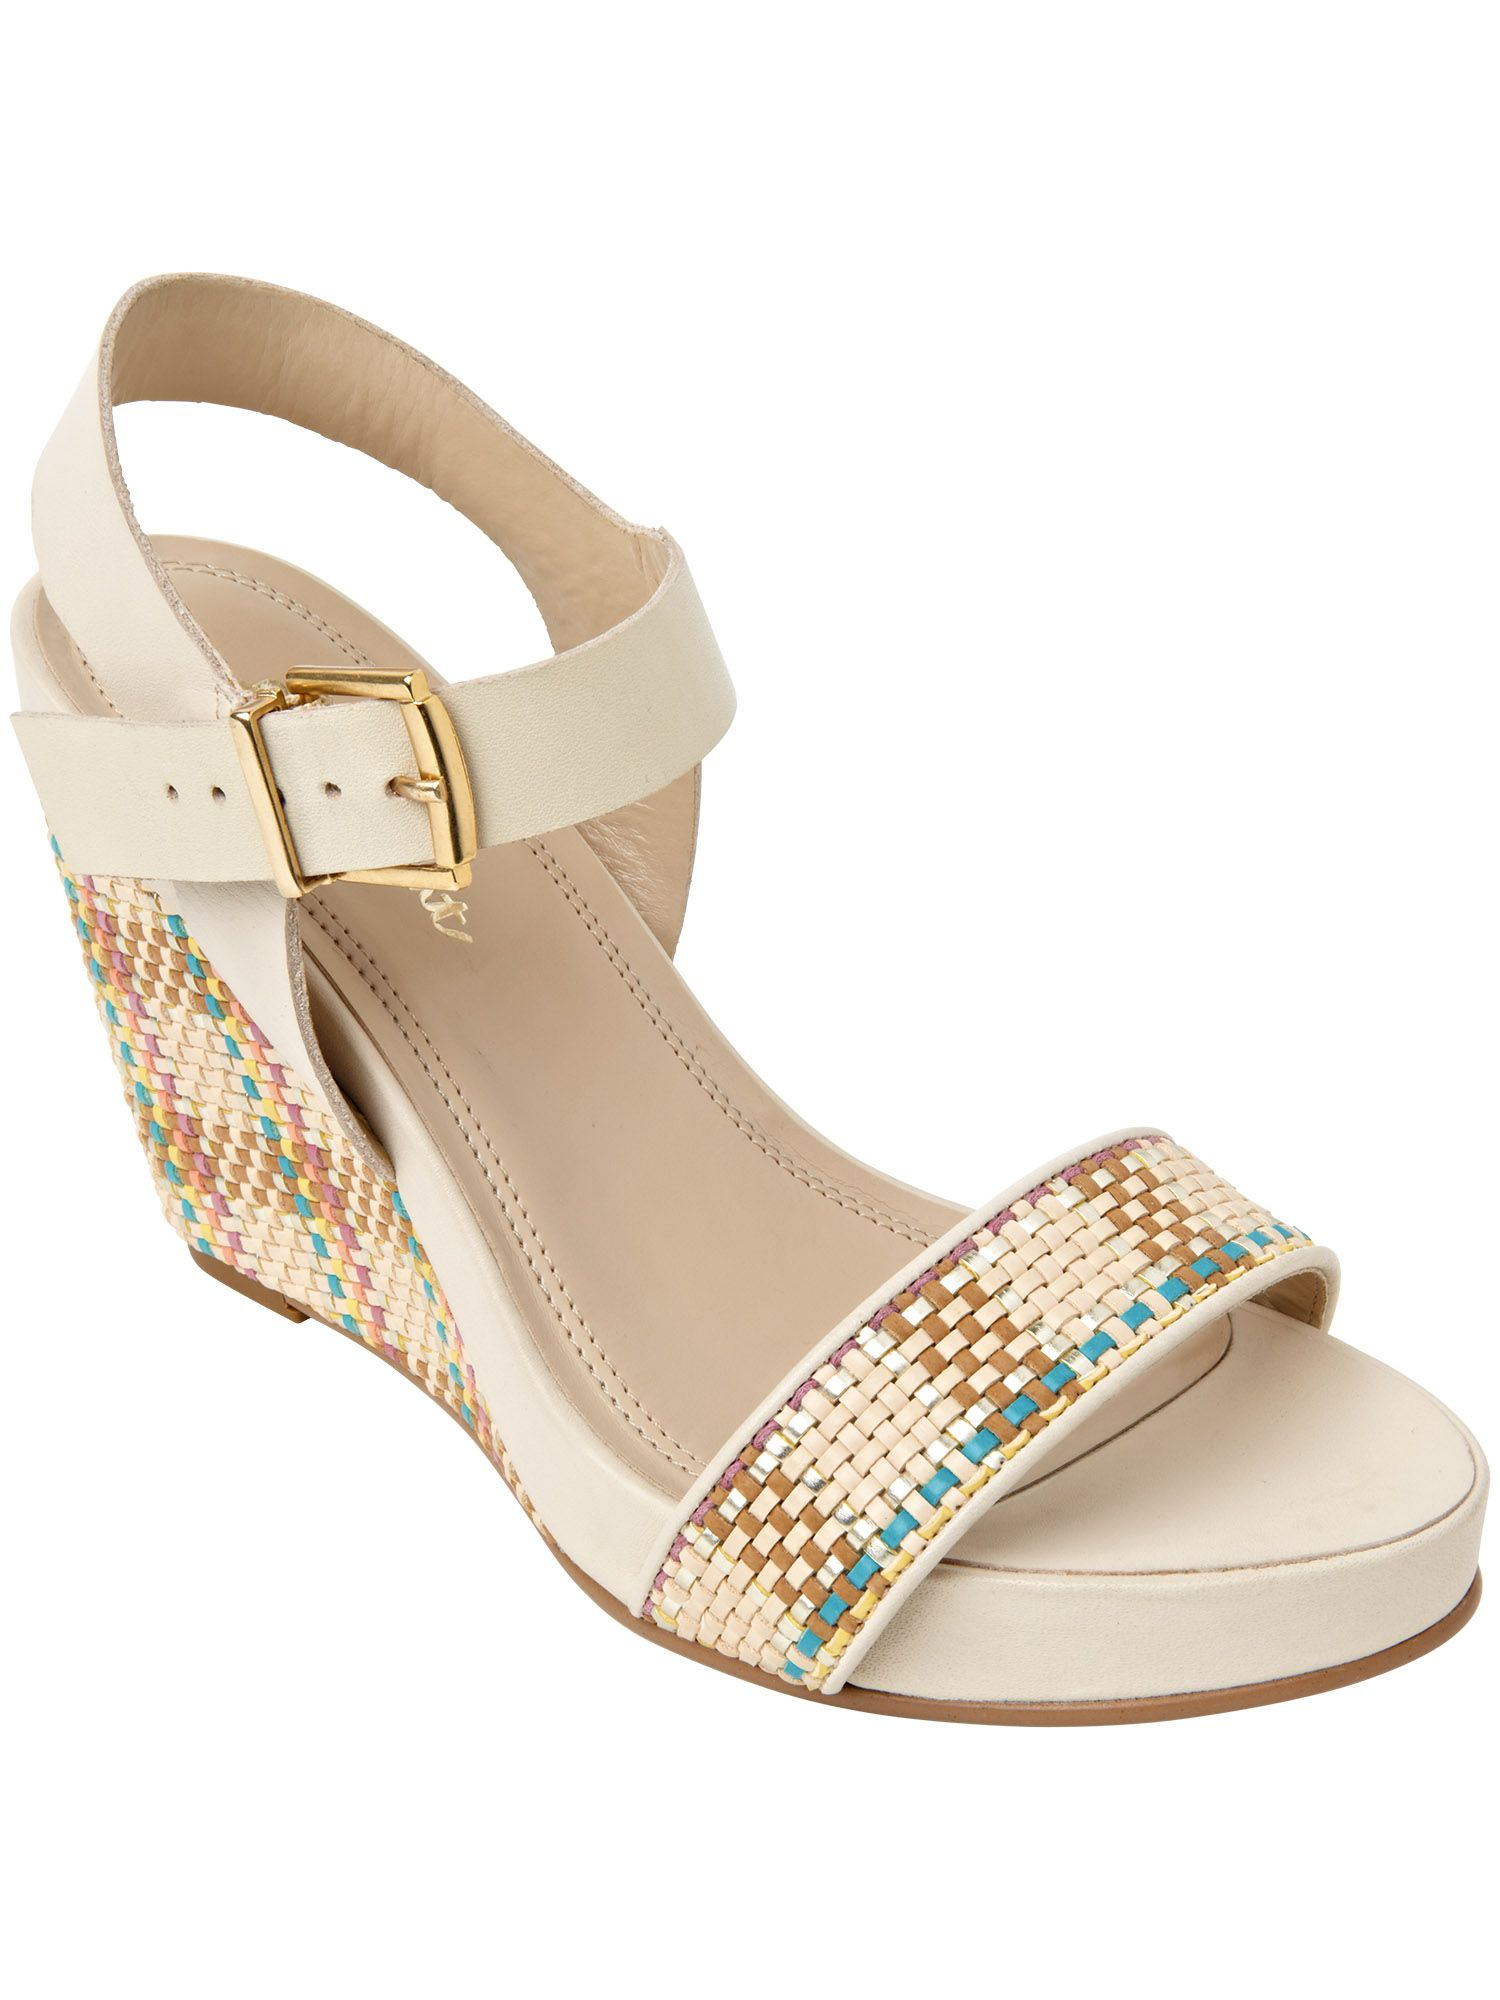 Tara wedge sandal